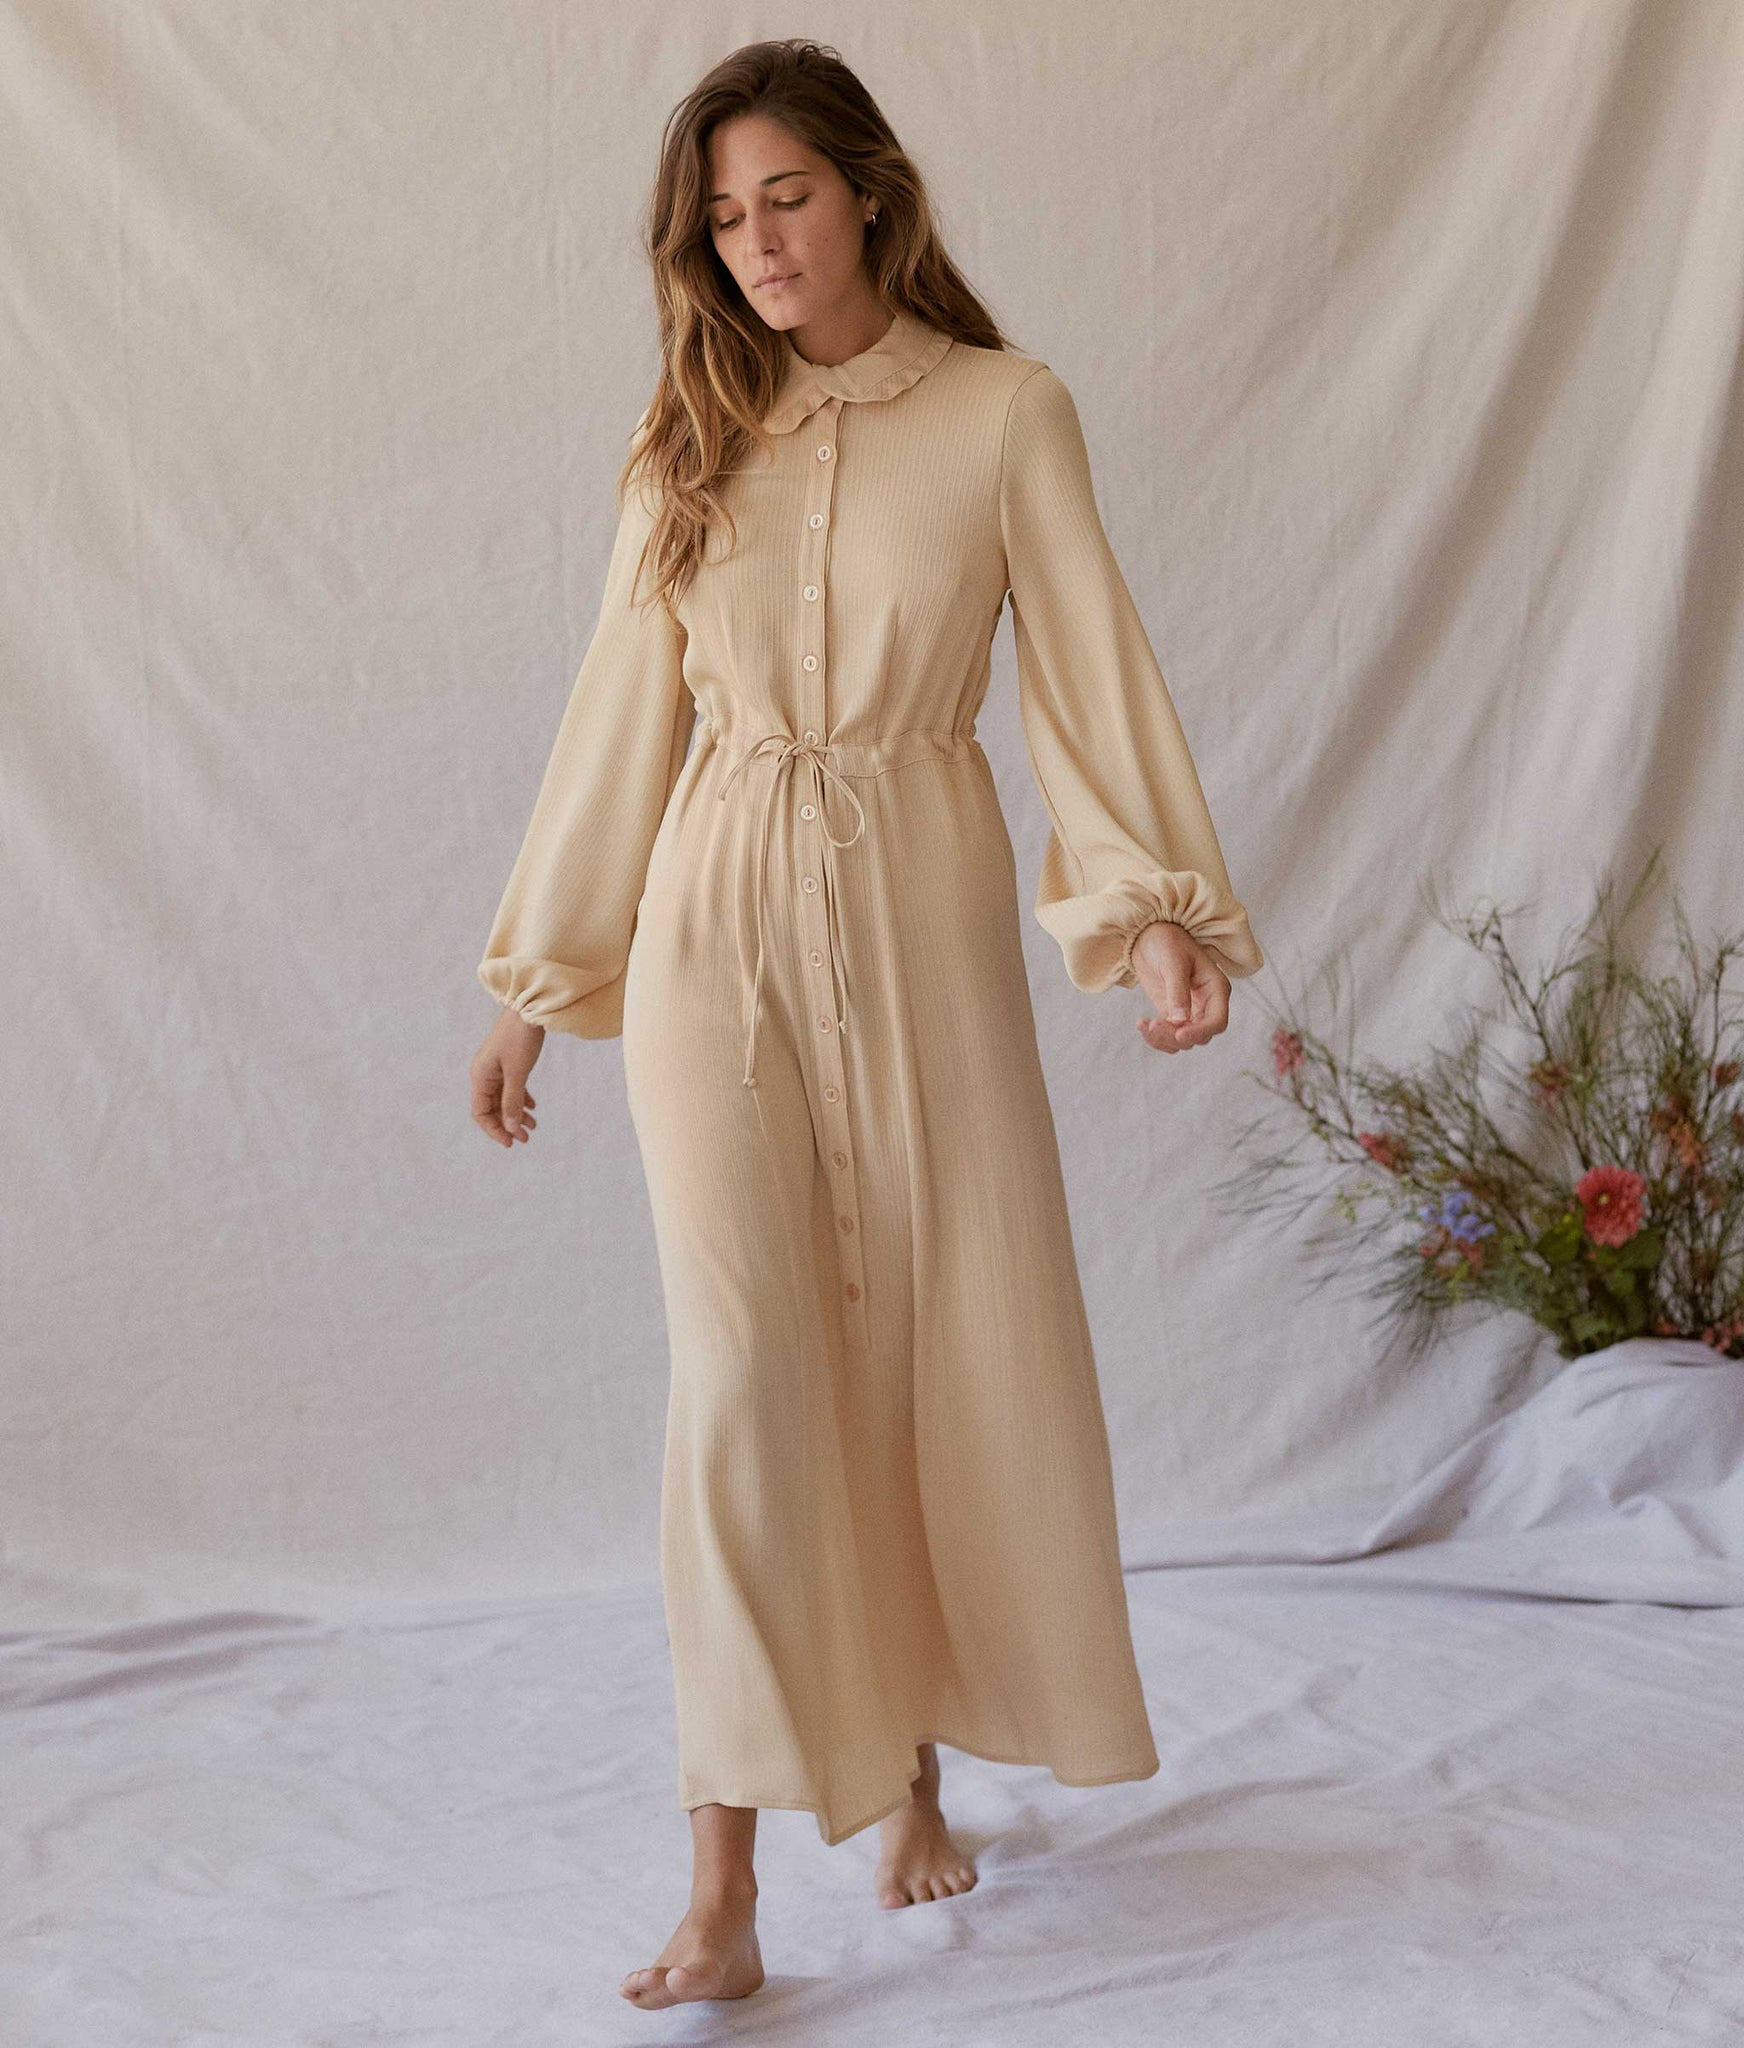 The Selma Dress |  Sand Dune